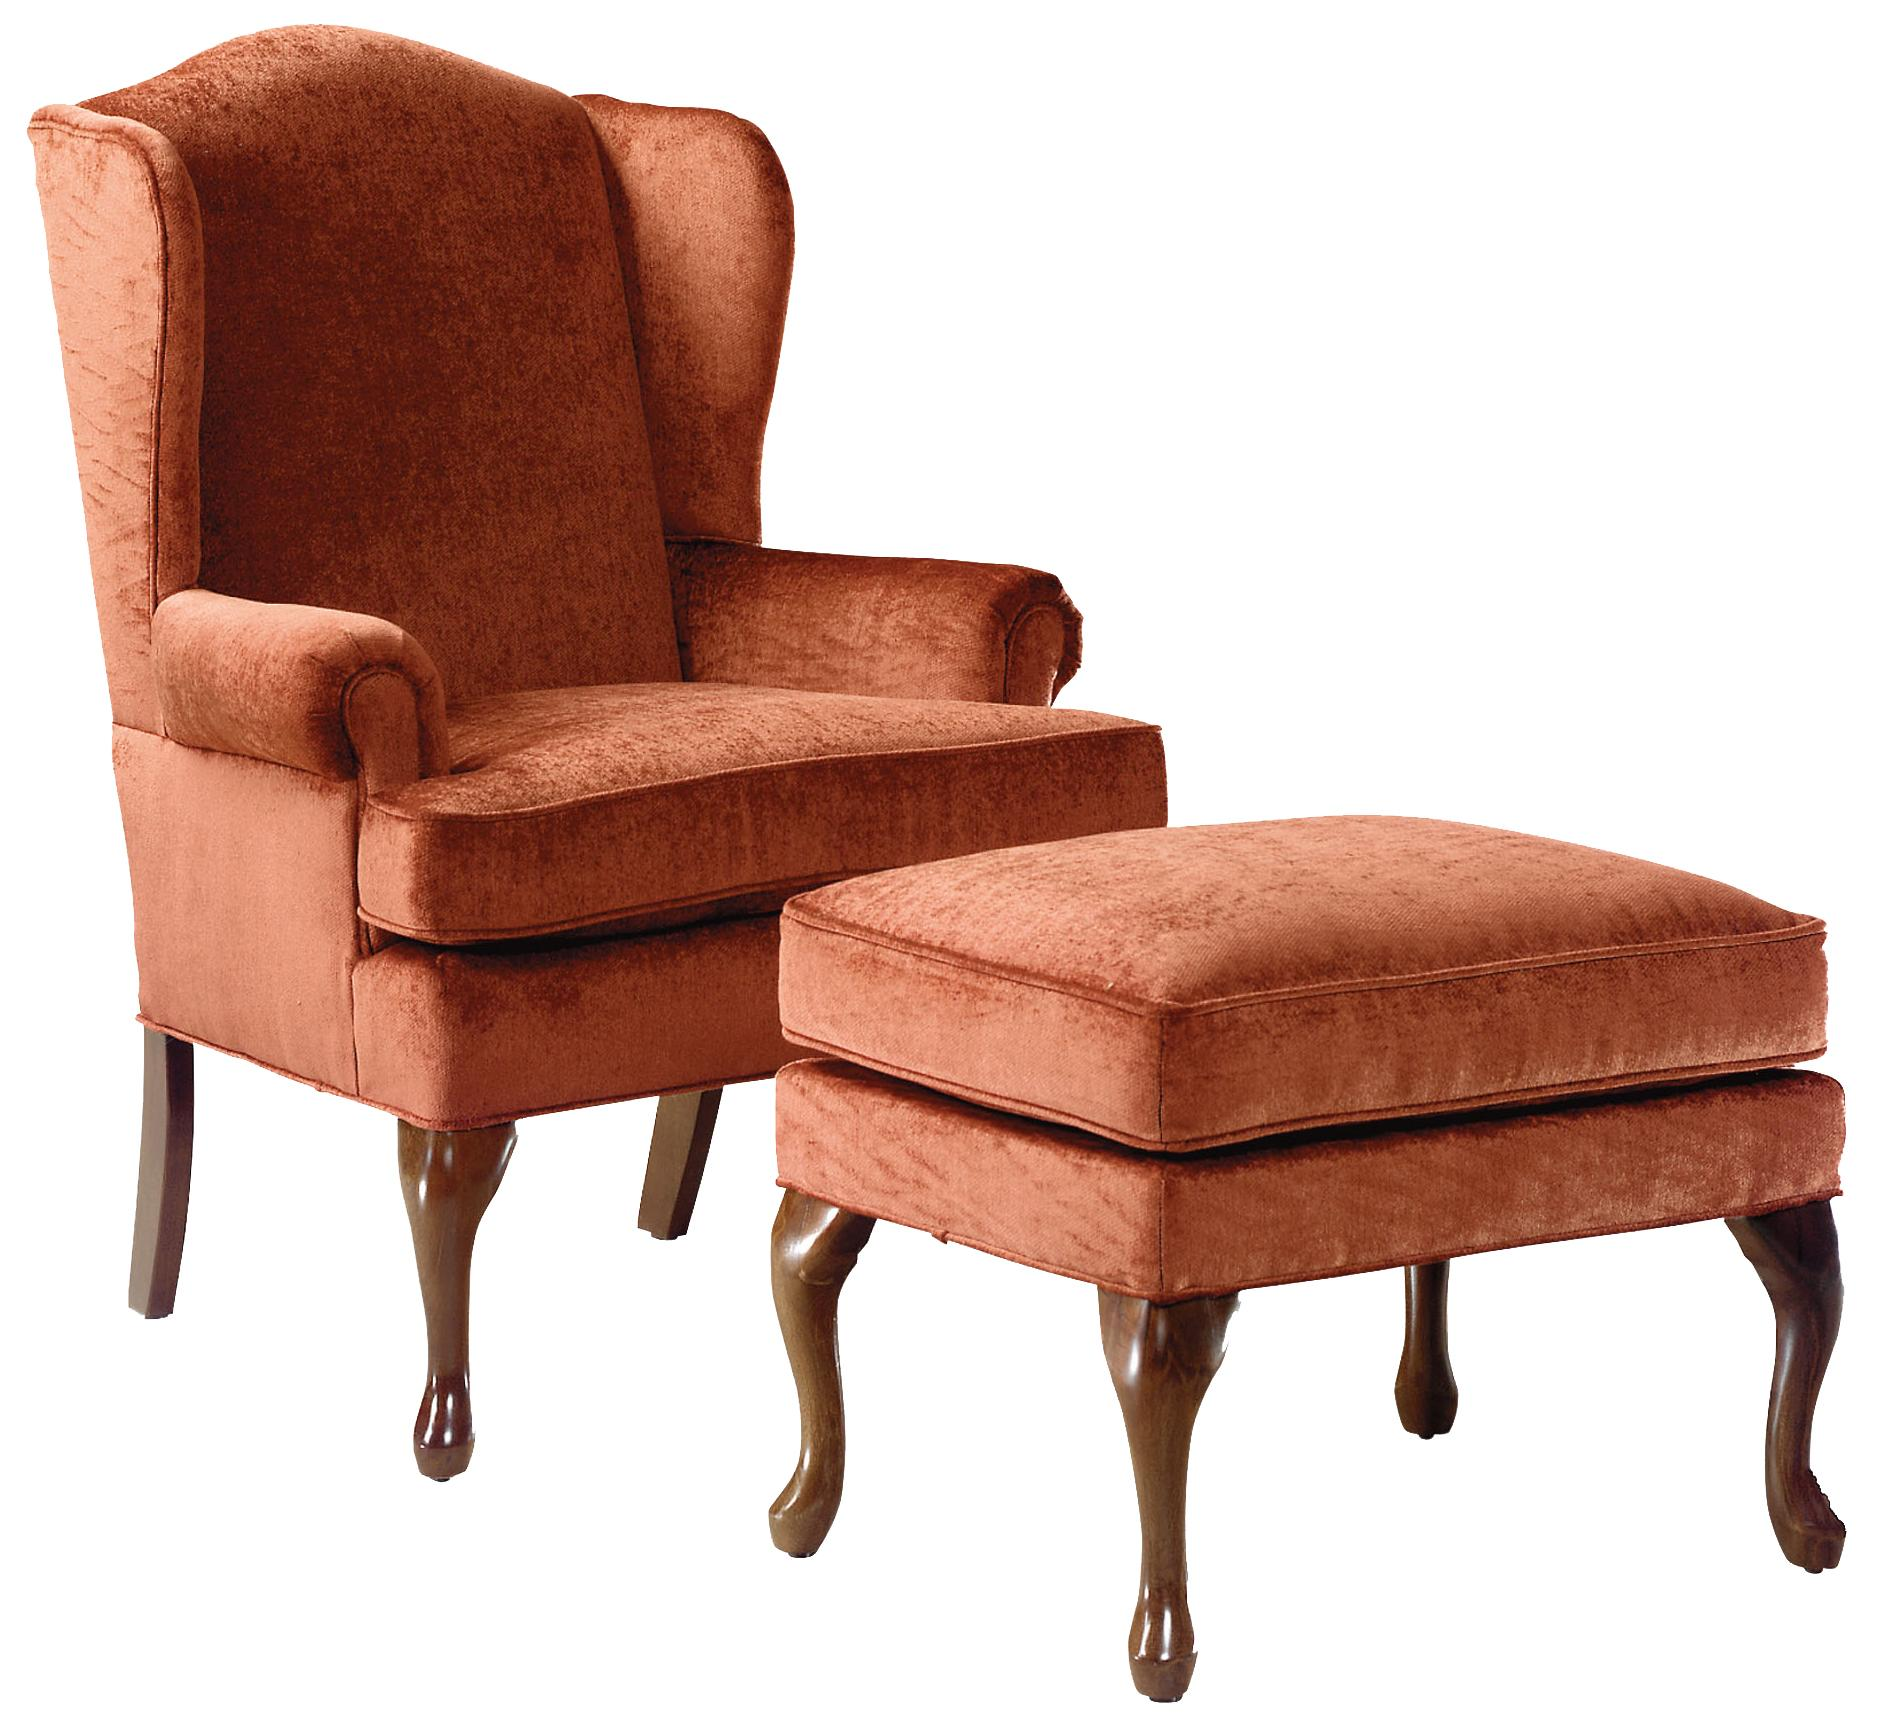 Fairfield Chairs Wing Chair & Ottoman - Item Number: 5118-01+20